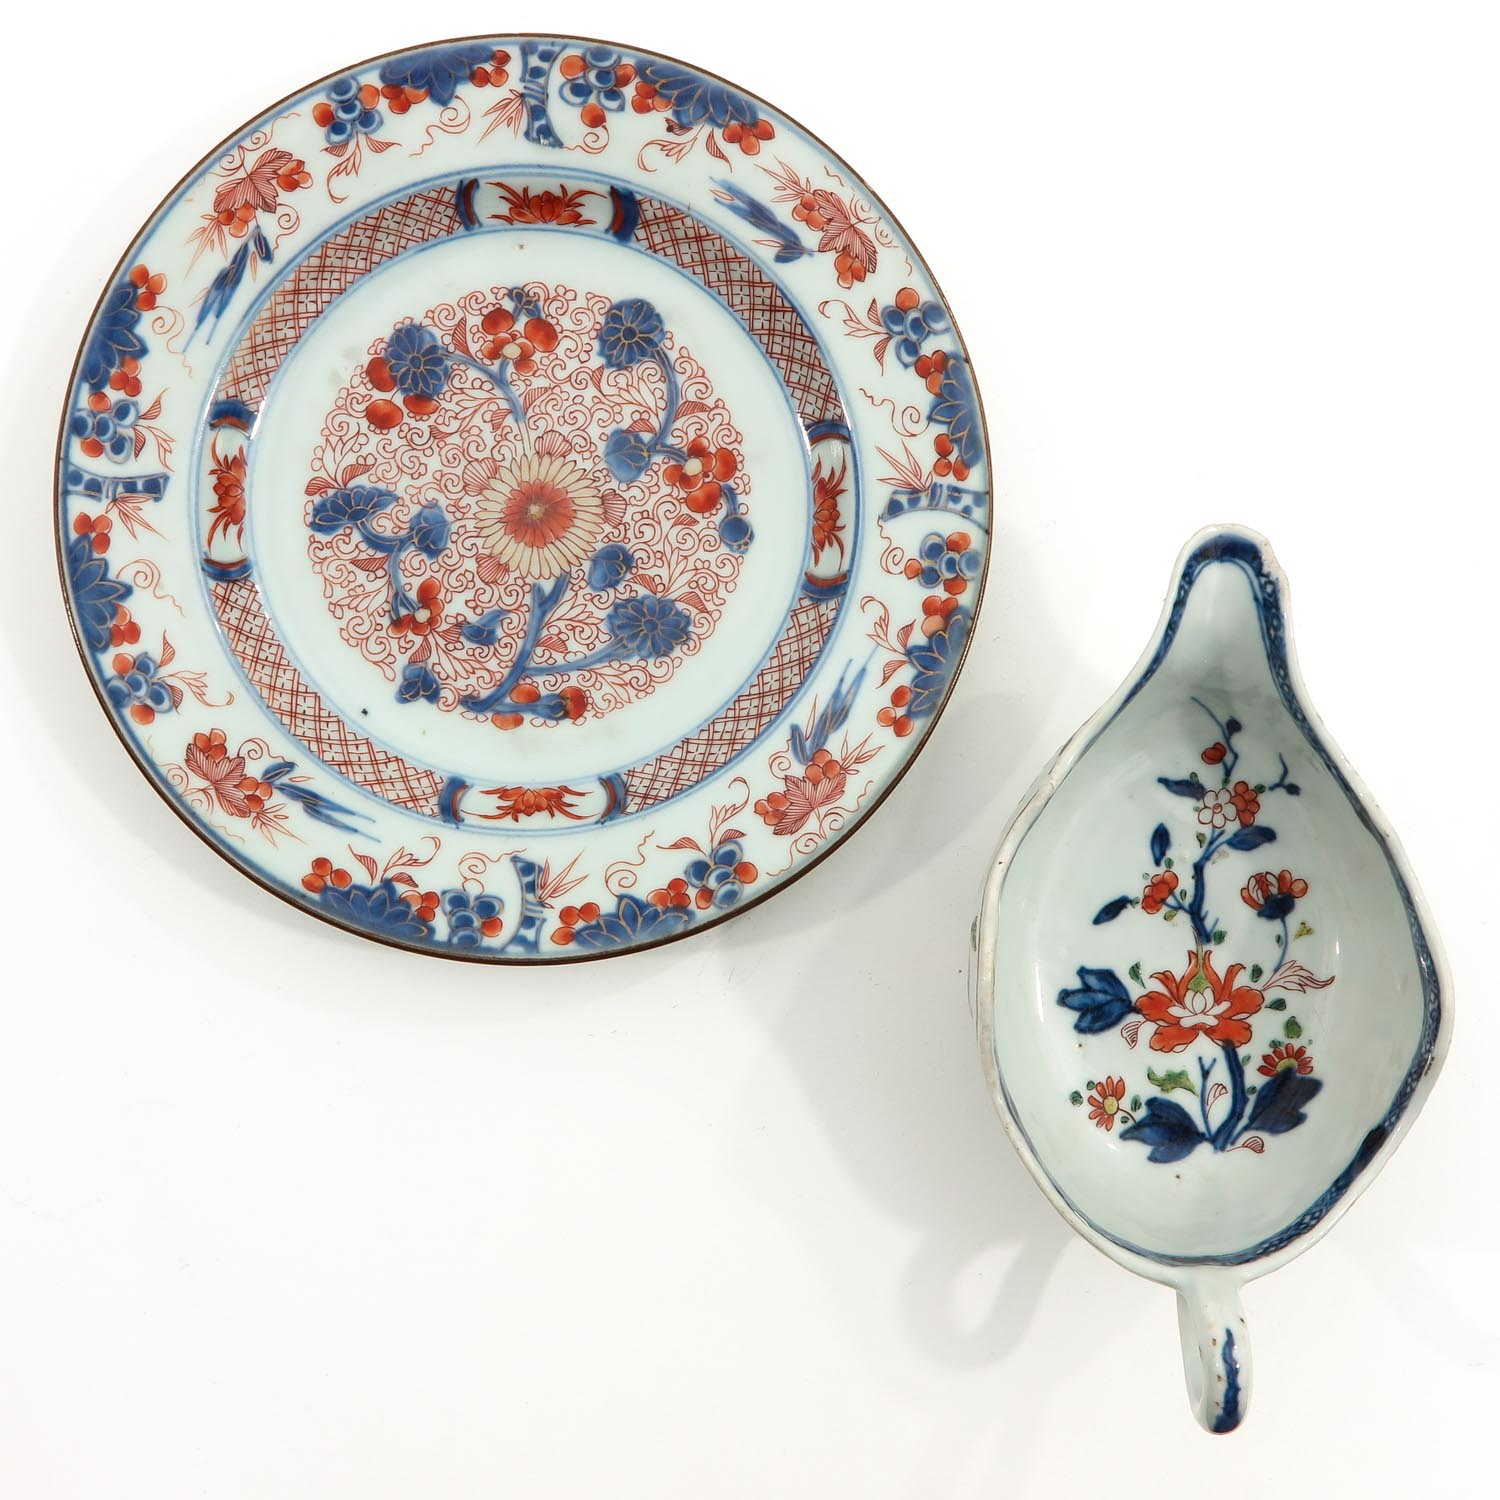 An Imari Plate and Gravy Boat - Image 5 of 10